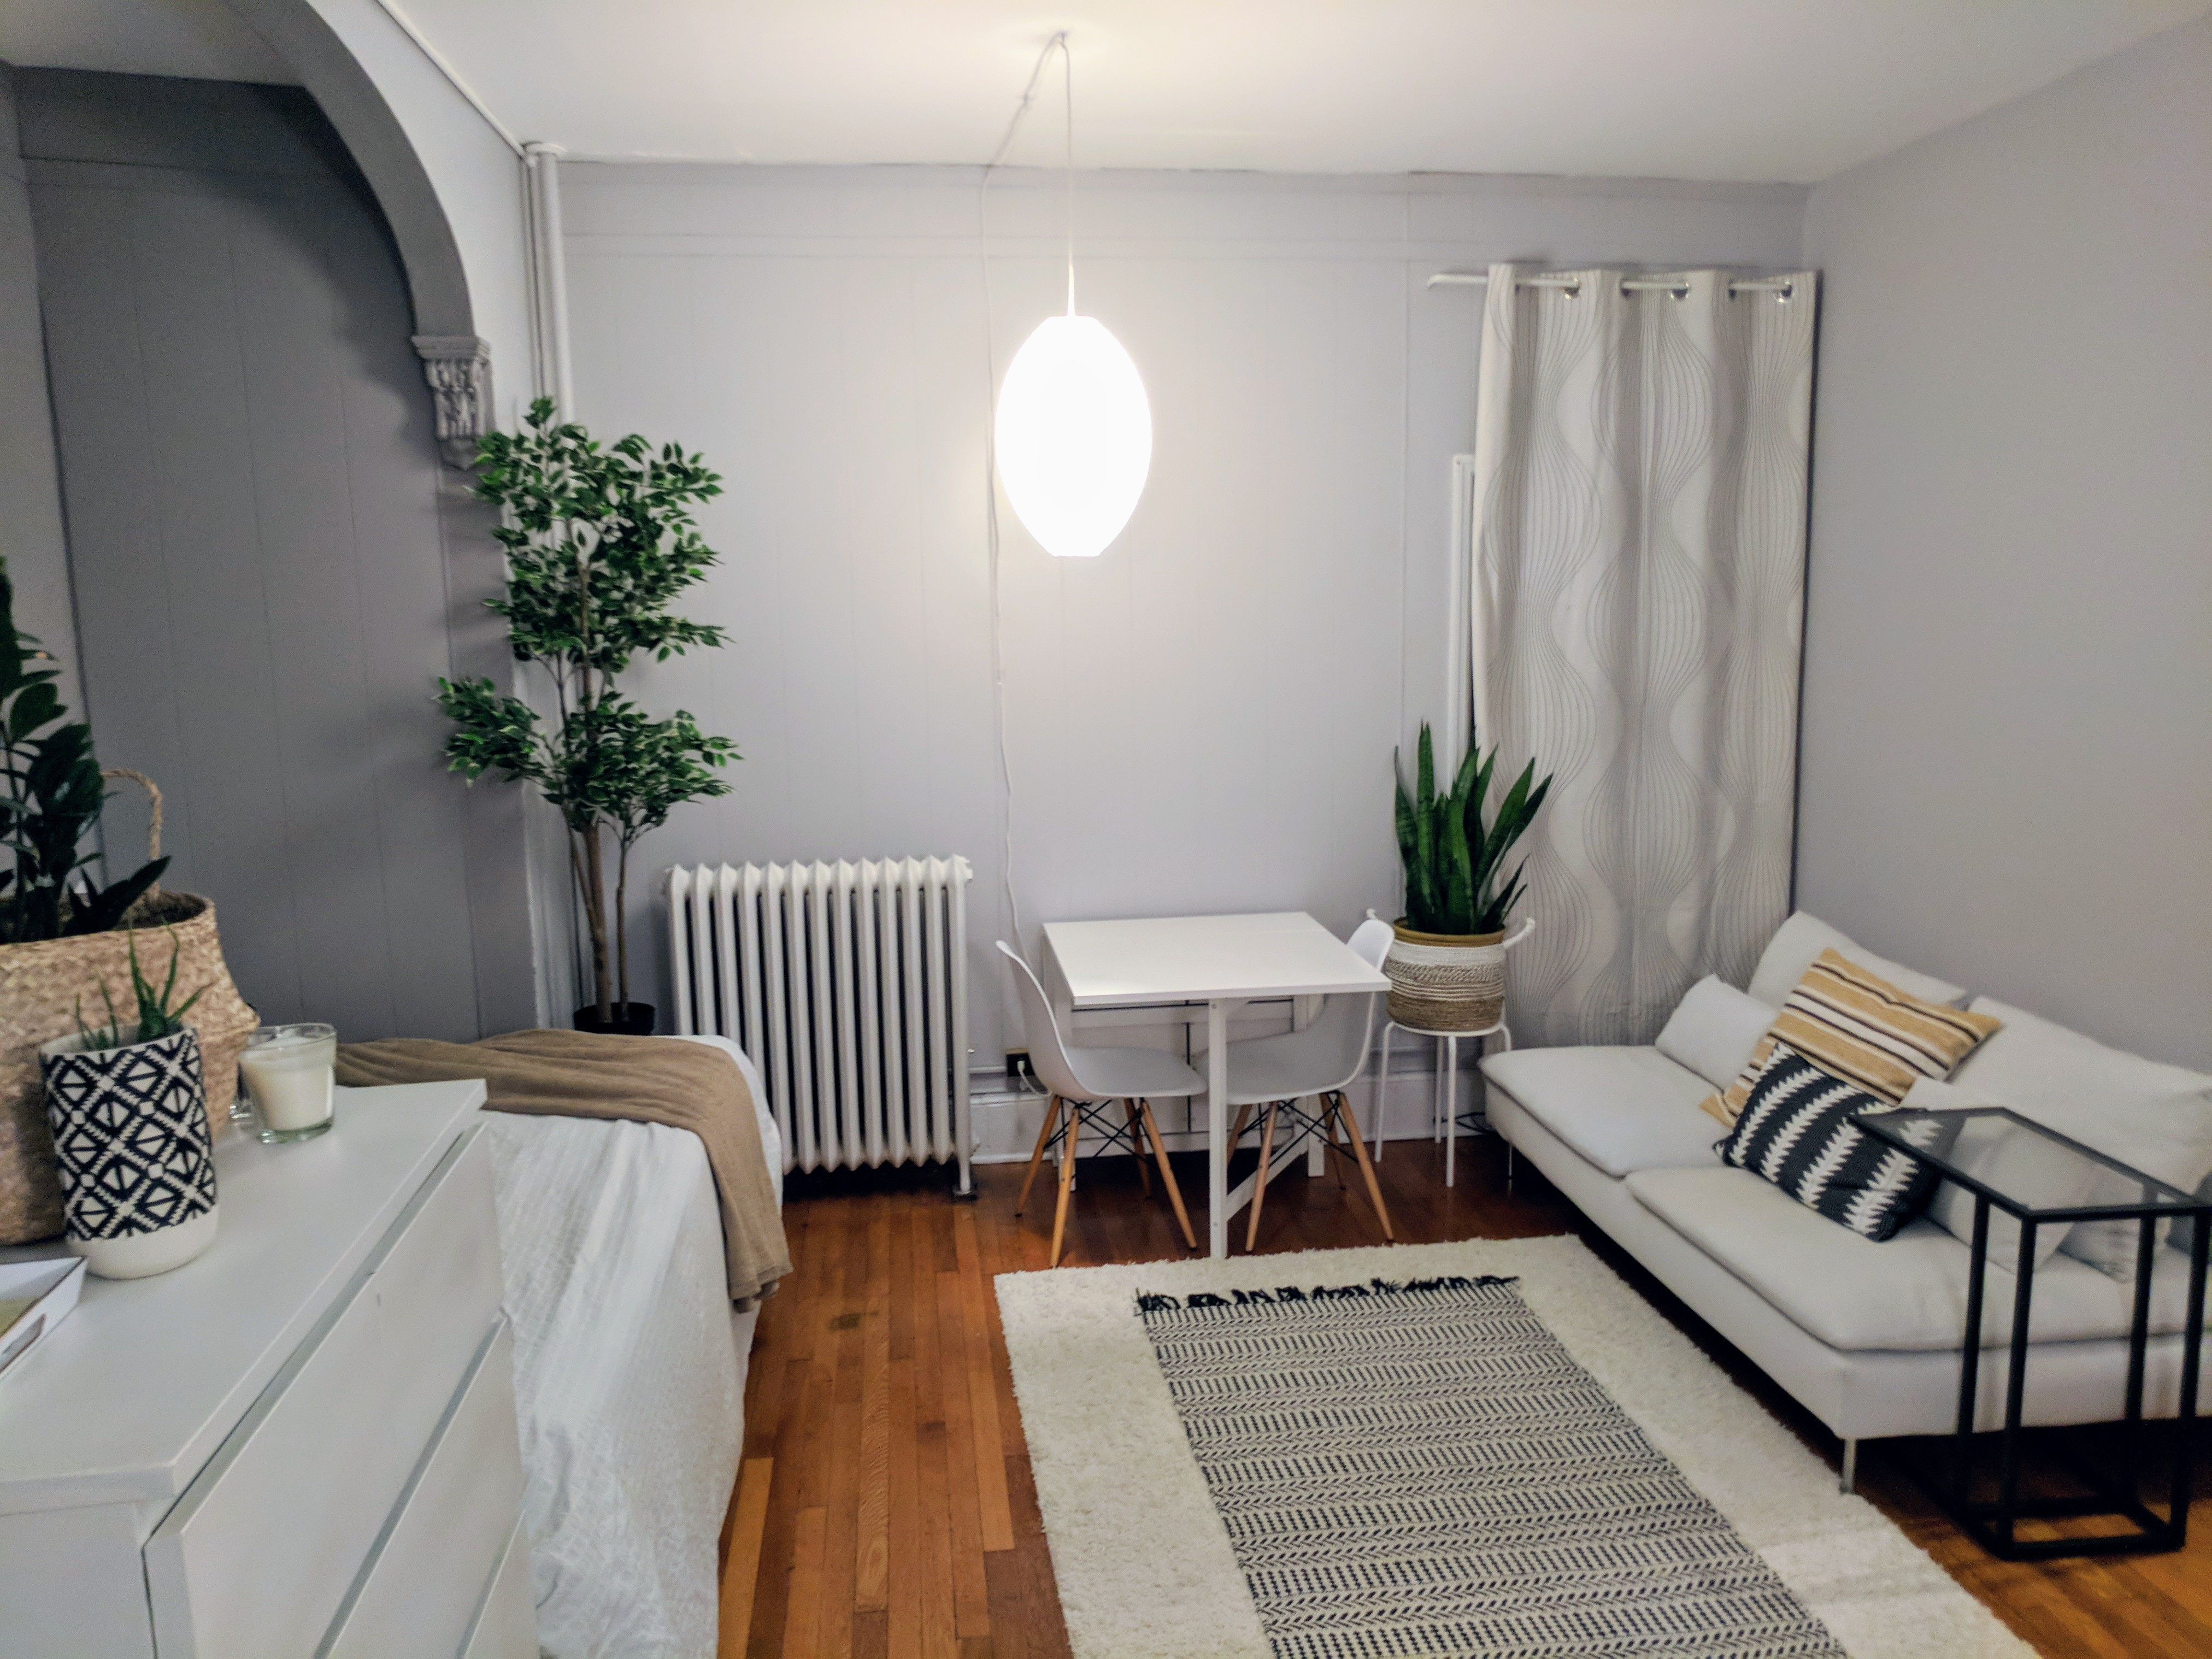 Tiny Space Living In A New York Studio Apartment Therapy